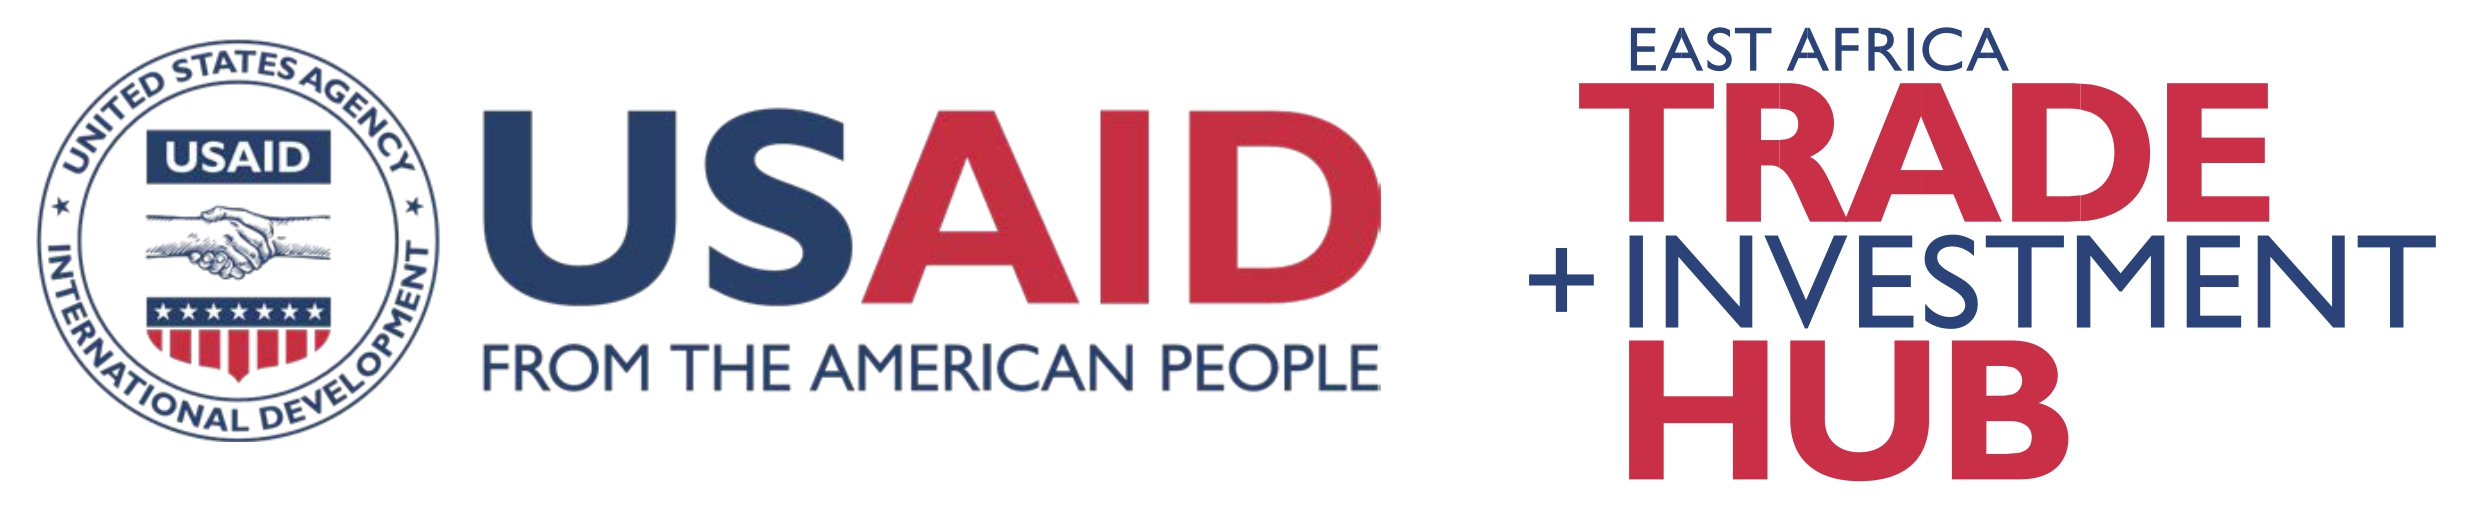 East Africa Trade and Investment Hub USAID-HUB-Logo